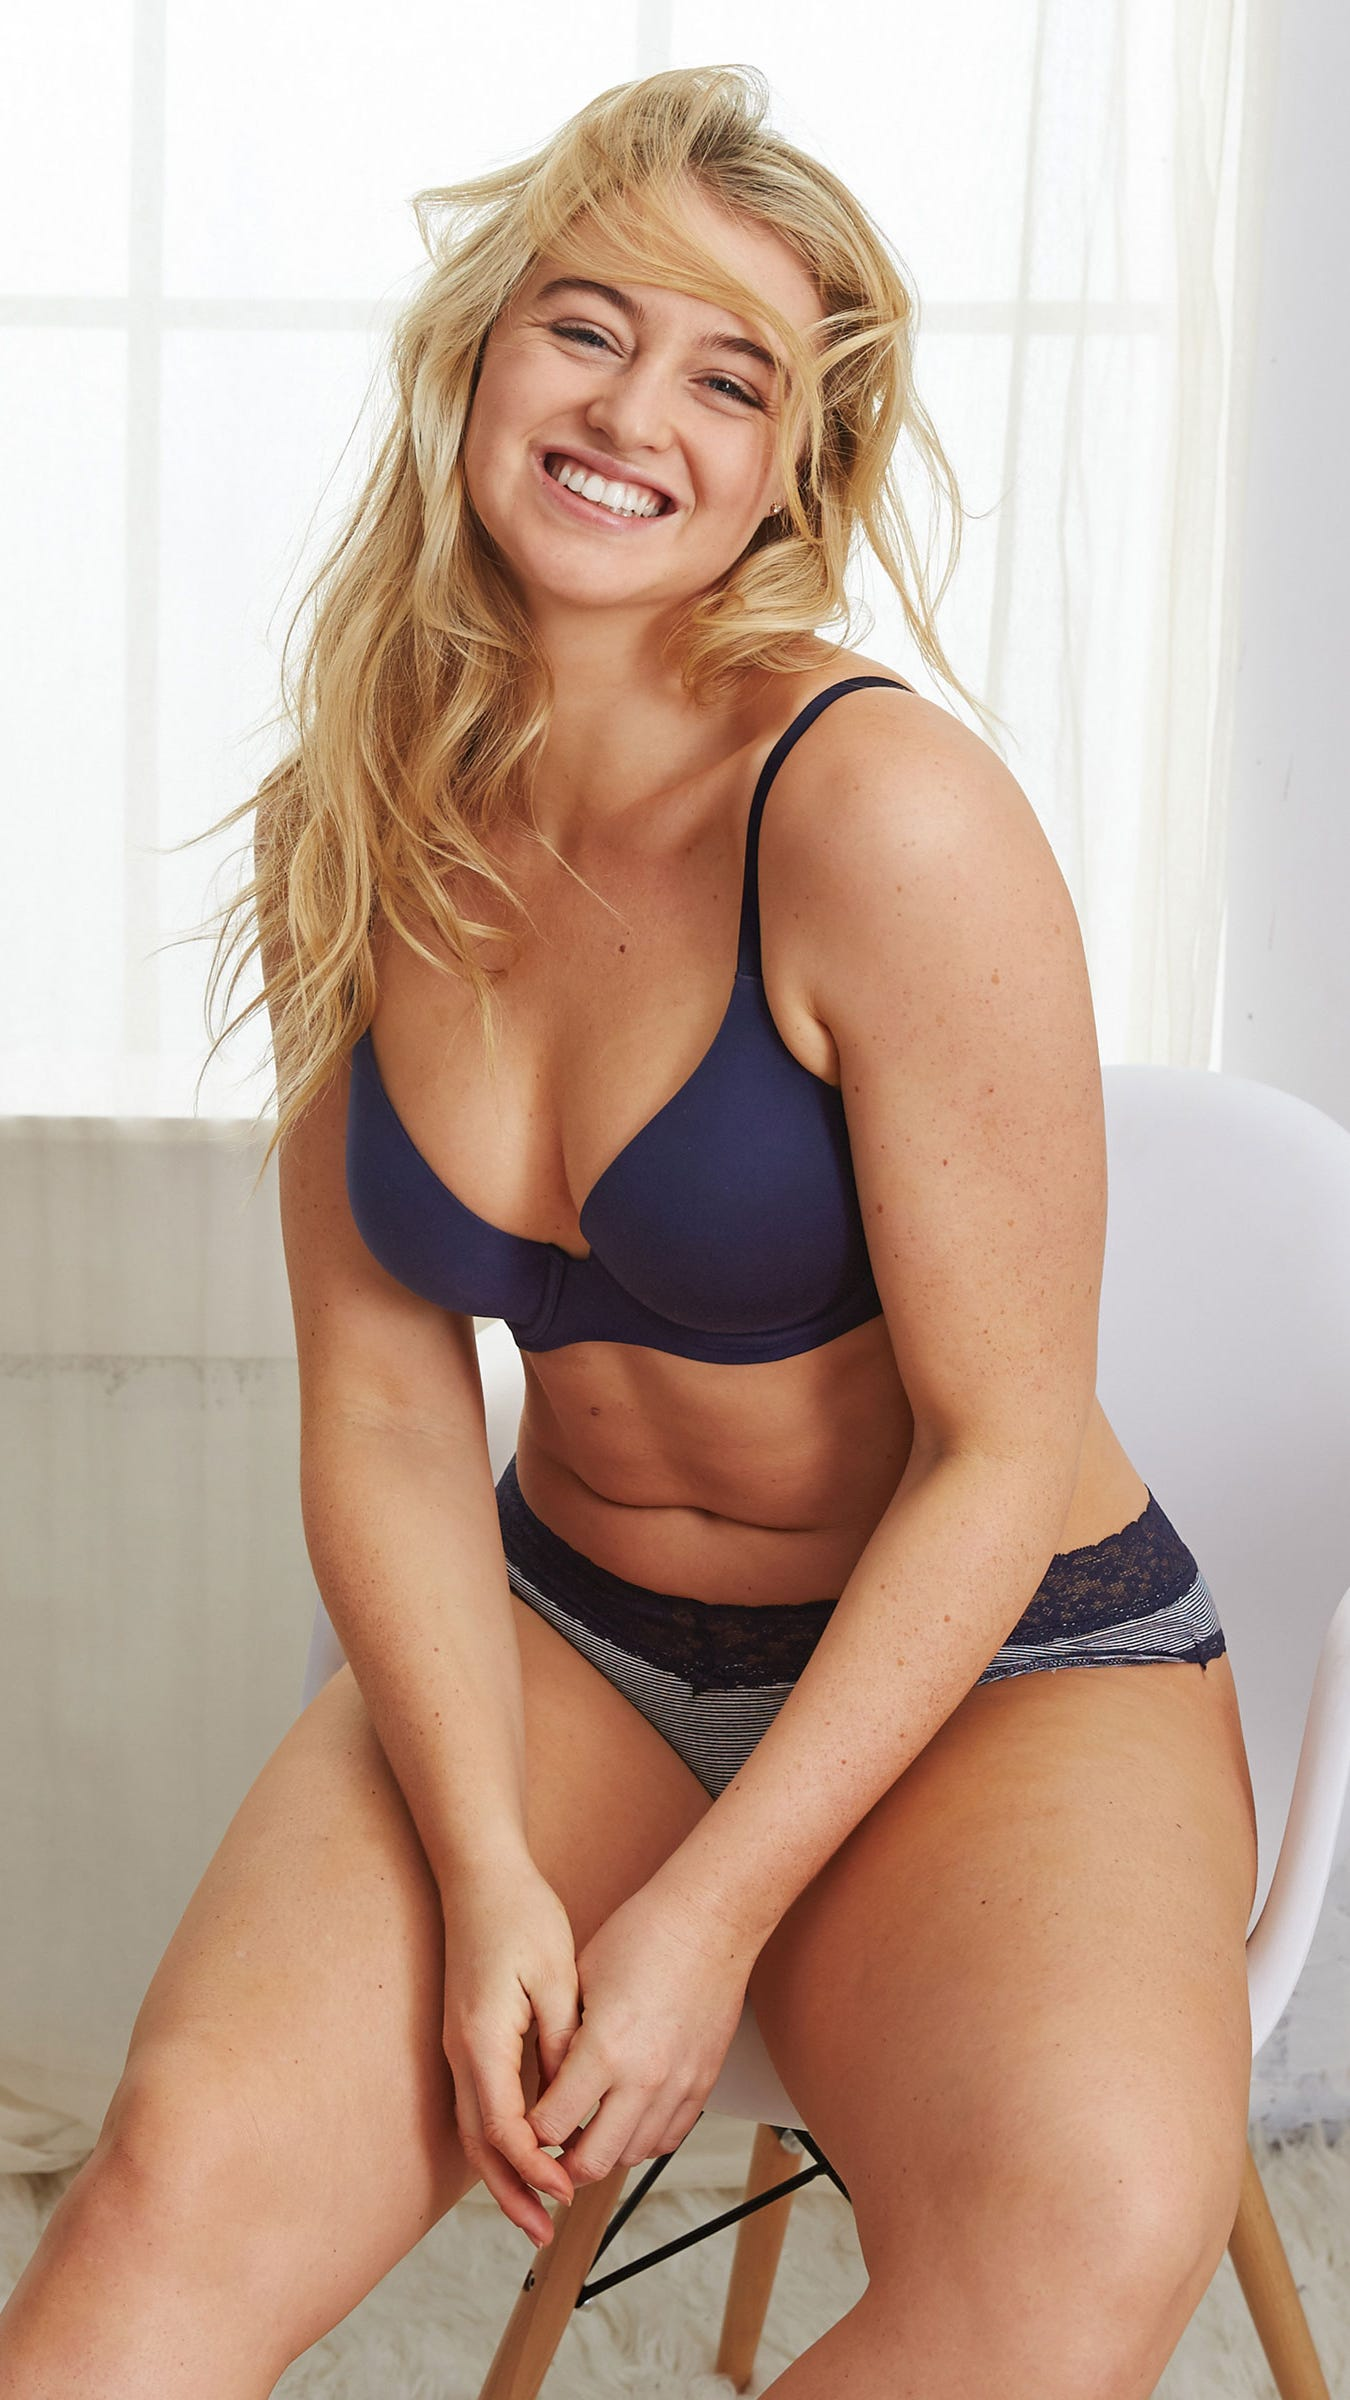 aerie lingerie sales up - body positivity